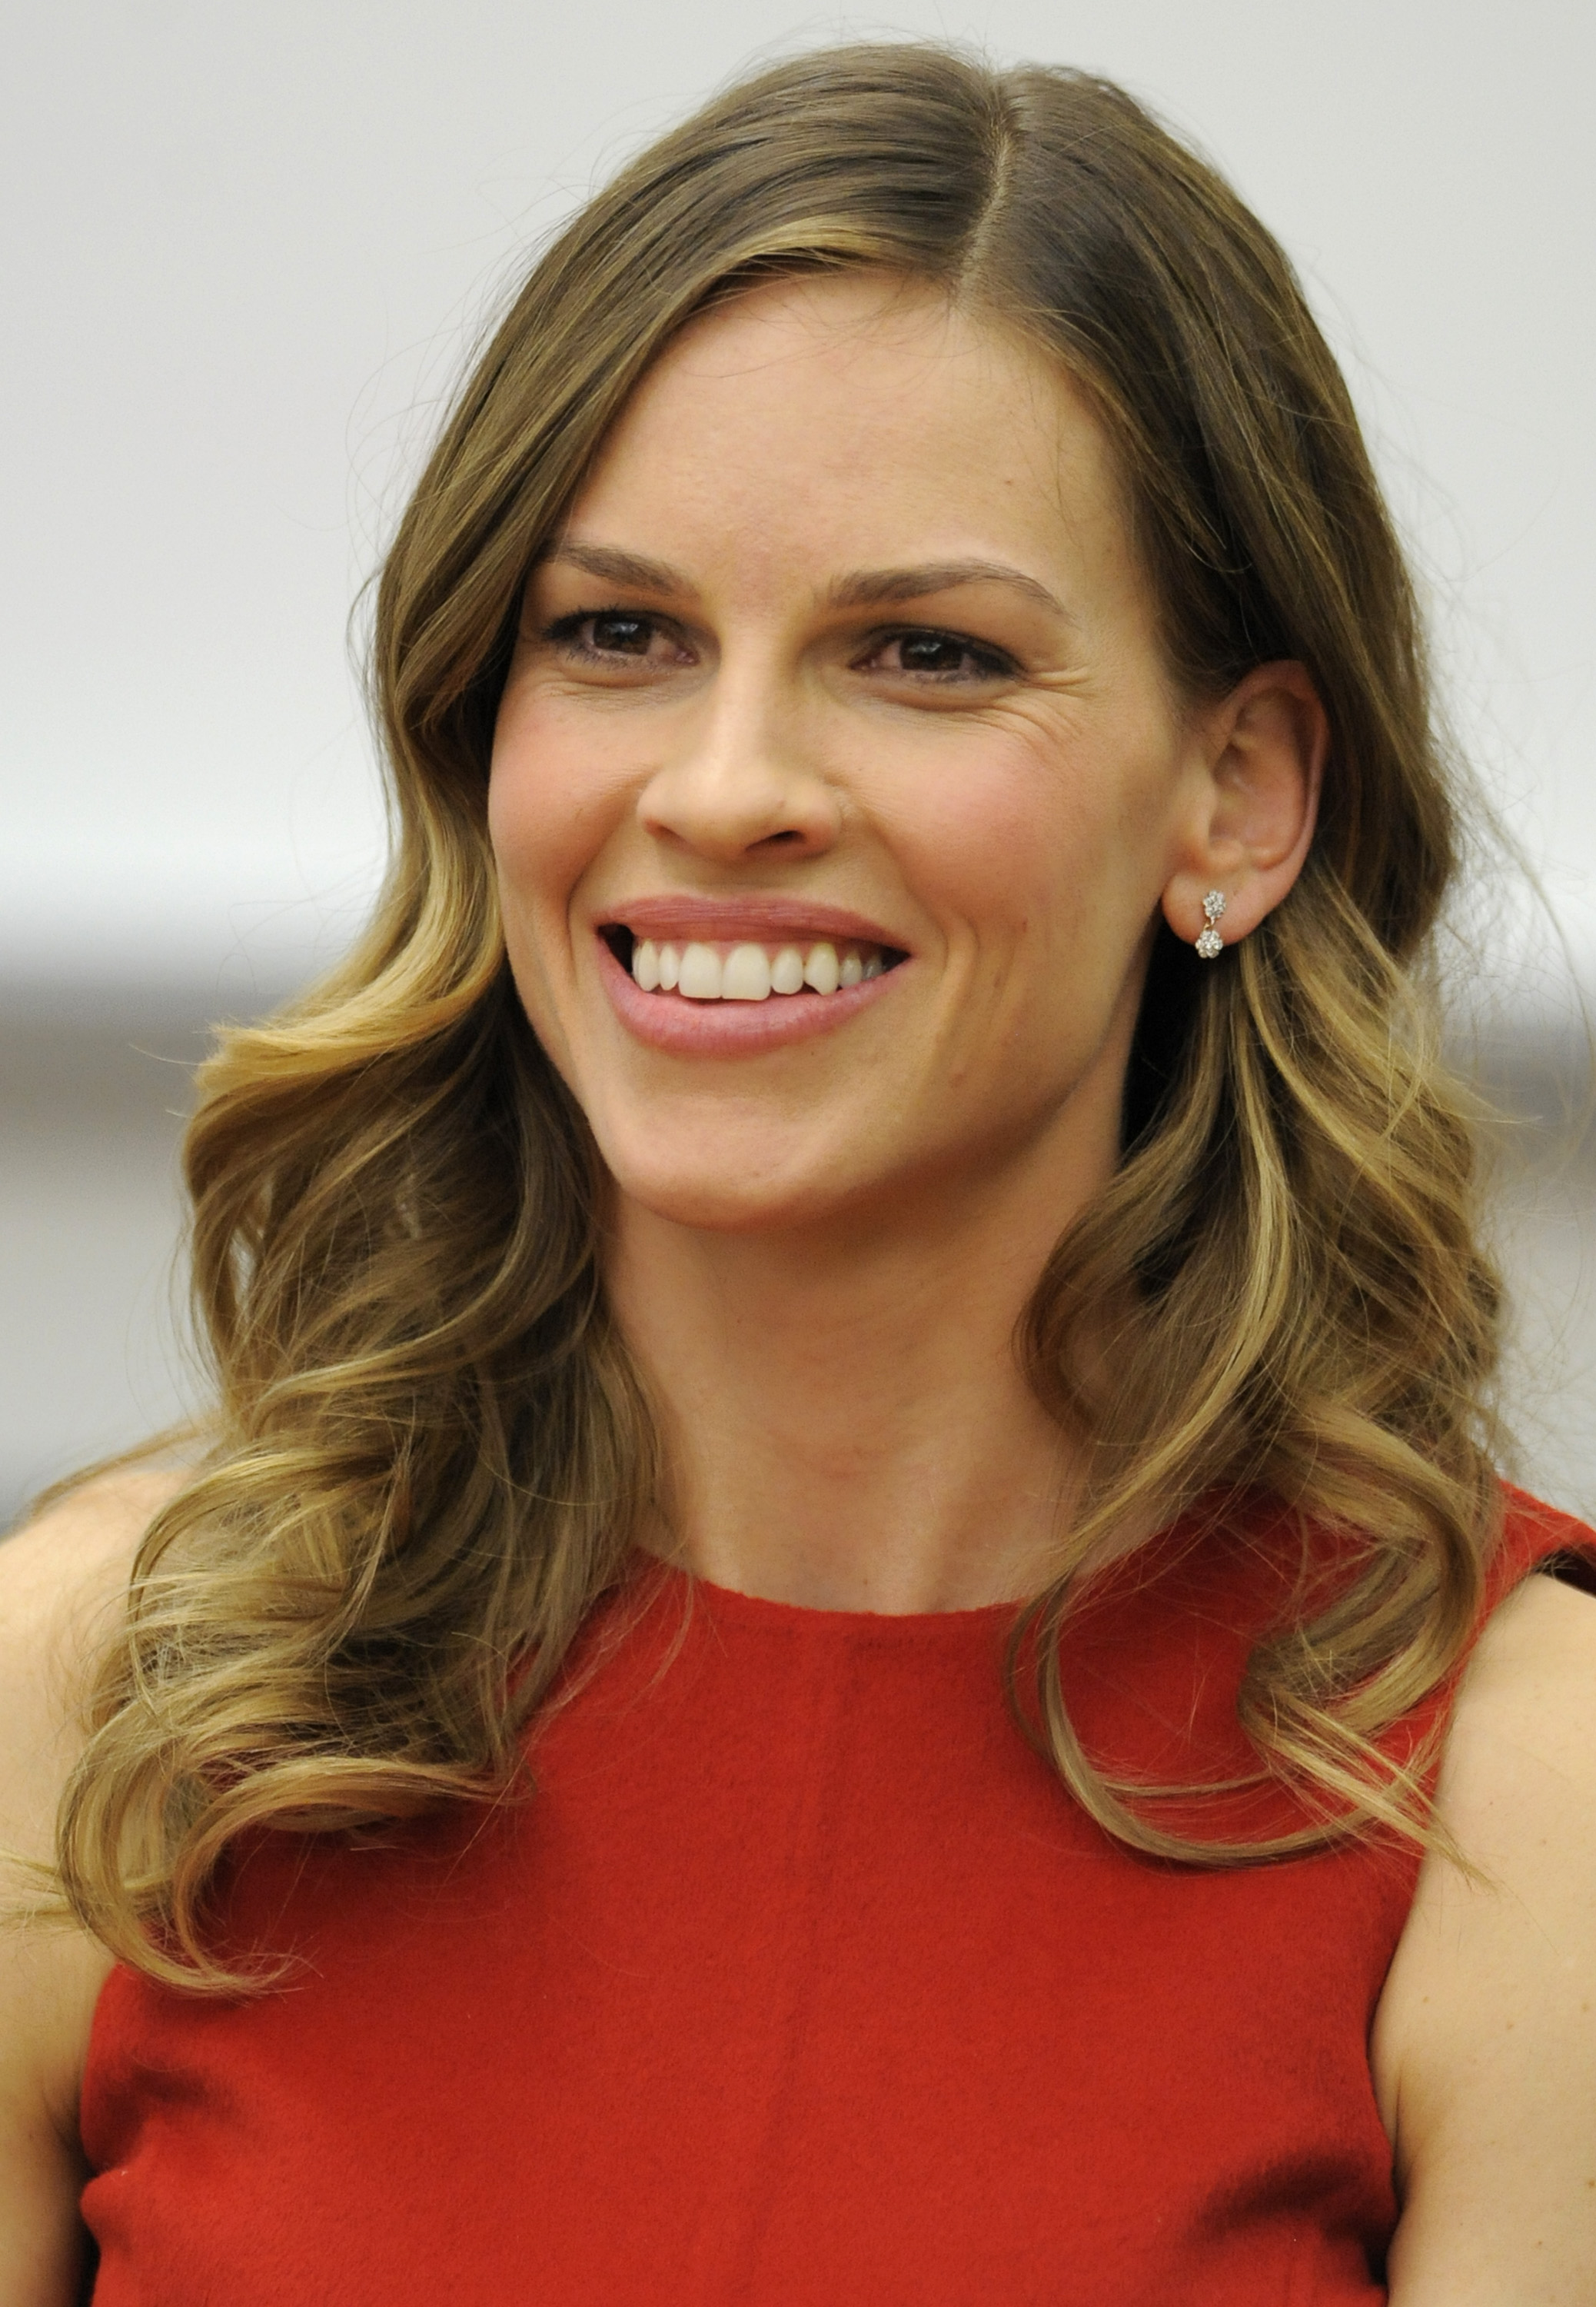 Hilary Swank Clips Coupons | That's Hot: 8 Celebs Who Don ...